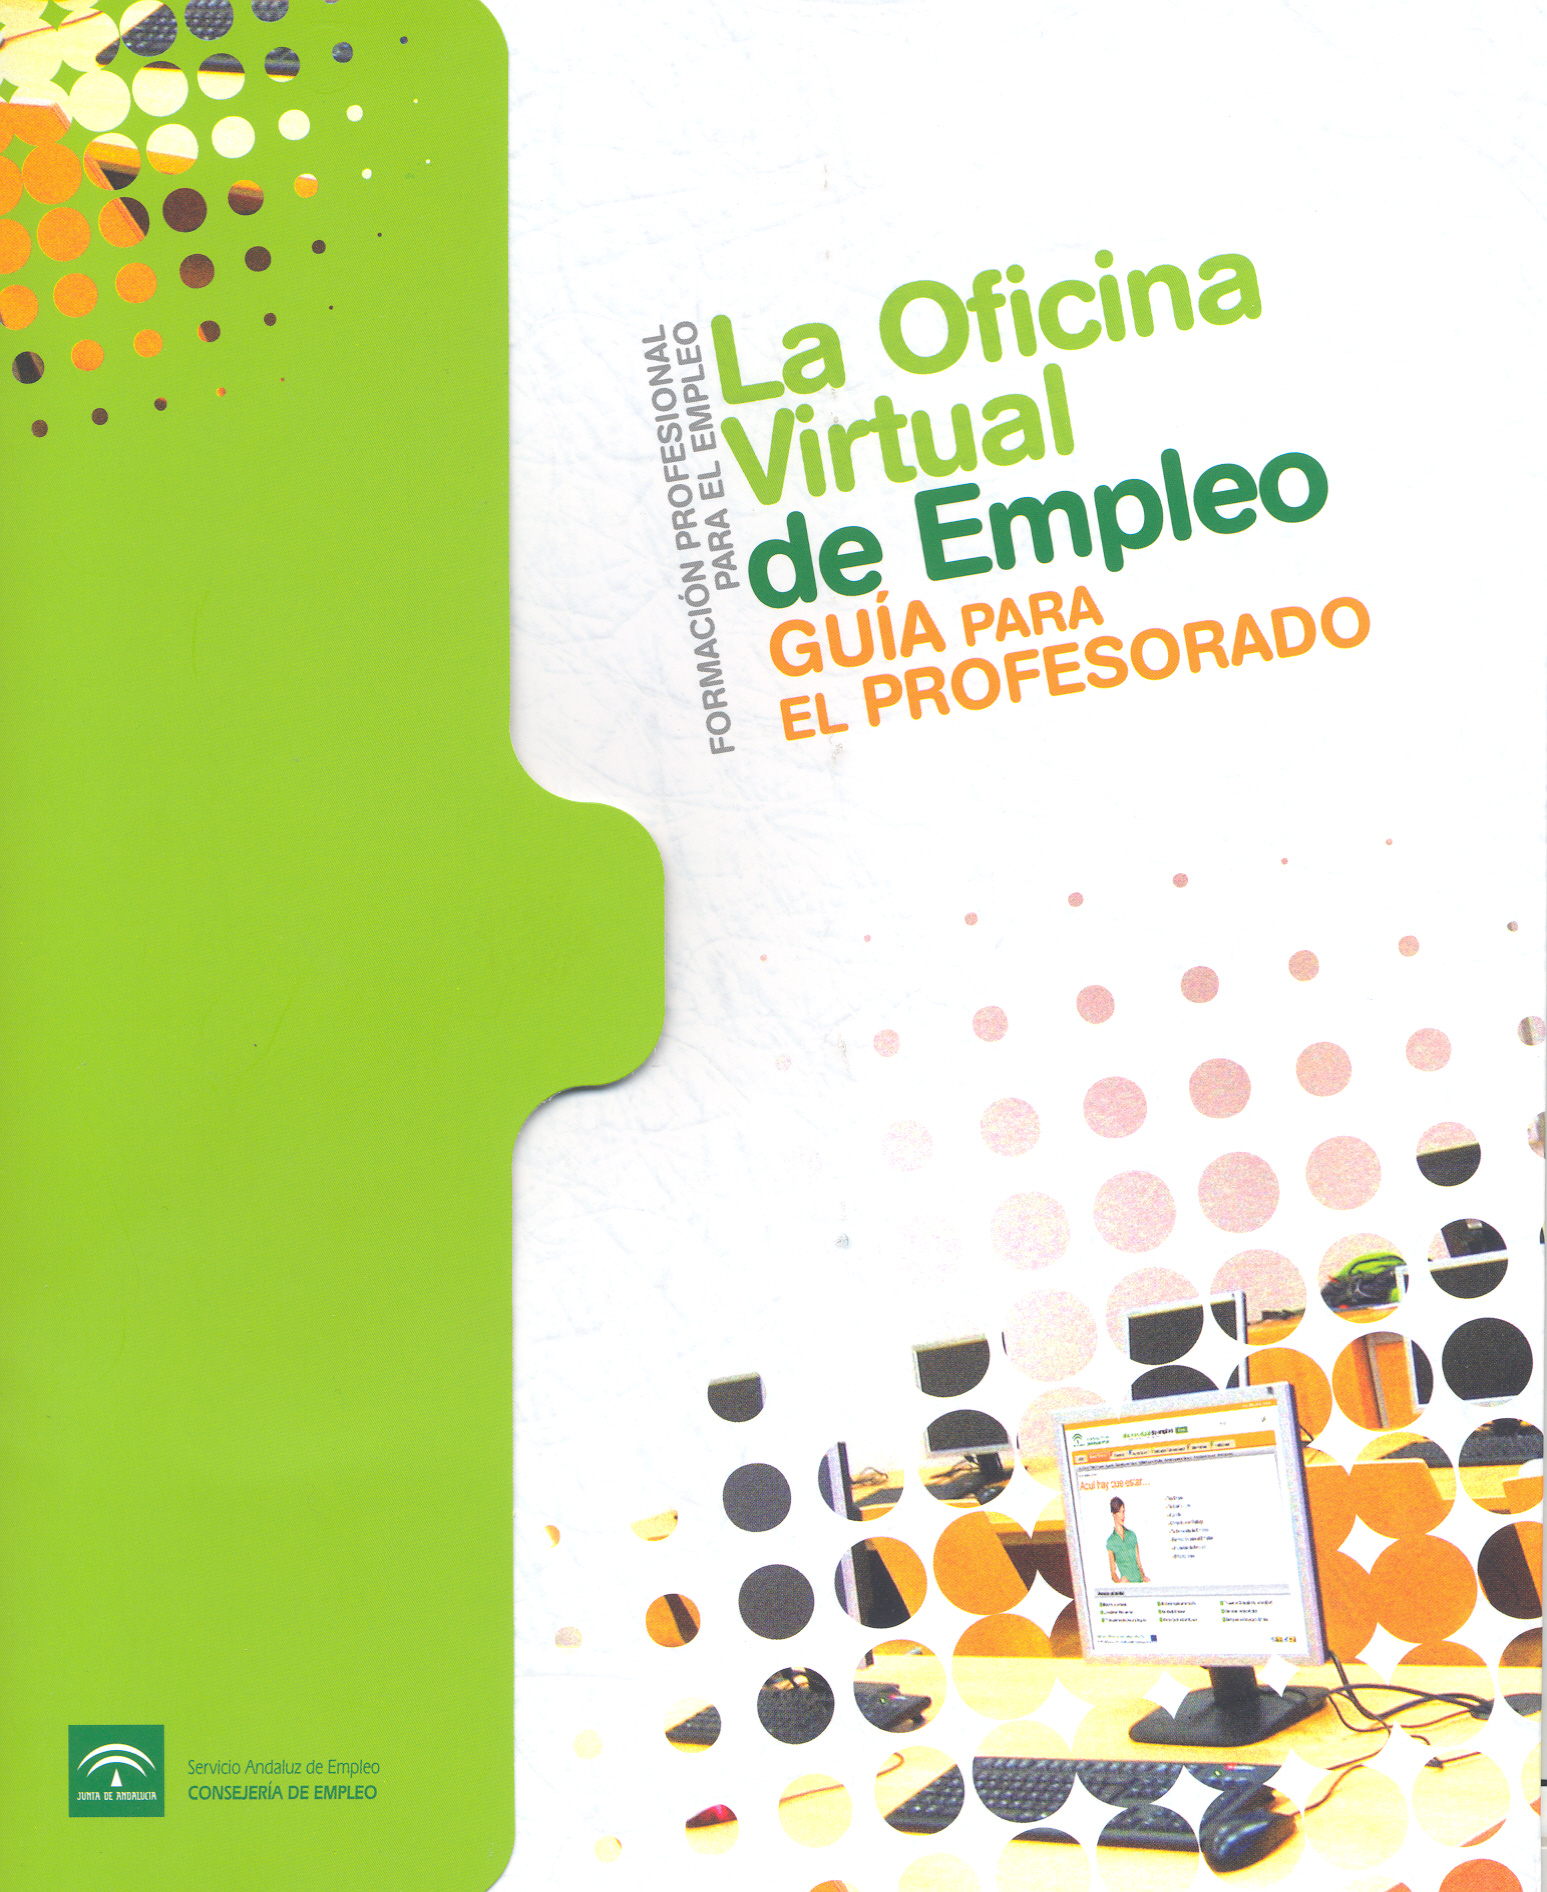 Junta de andaluc a la oficina virtual de empleo folleto for Oficina virtual paro